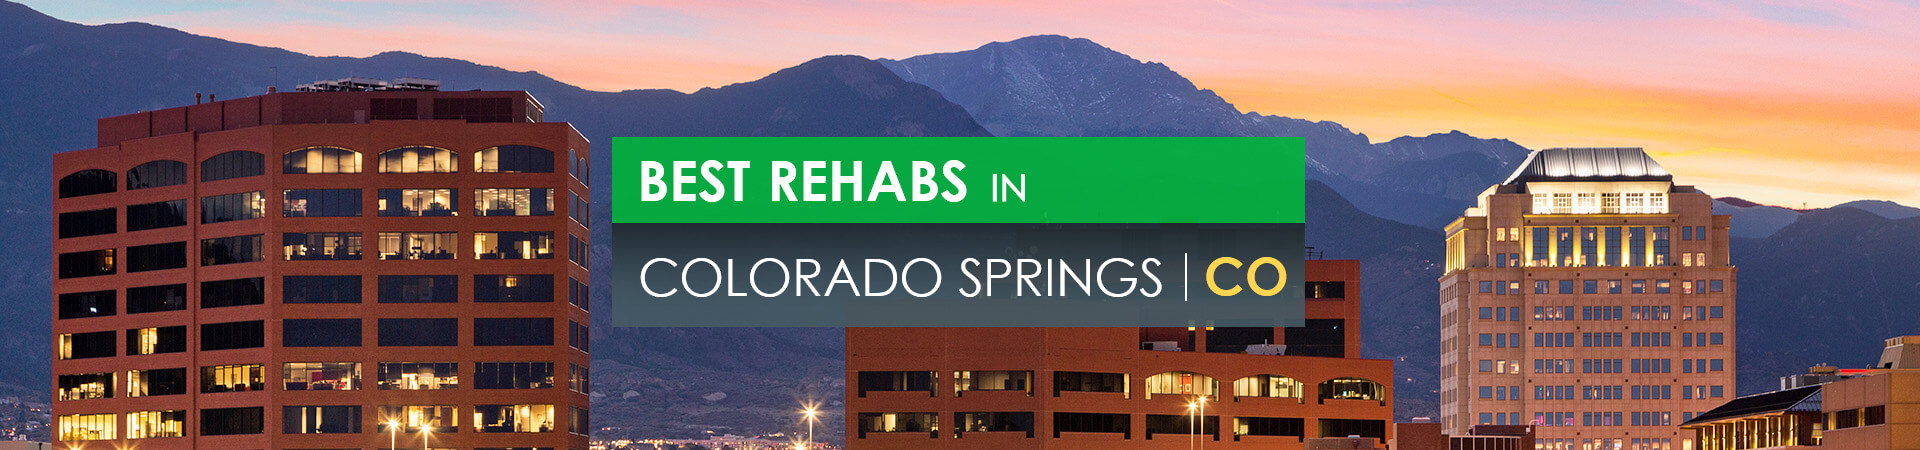 Best rehabs in Colorado Springs, CO